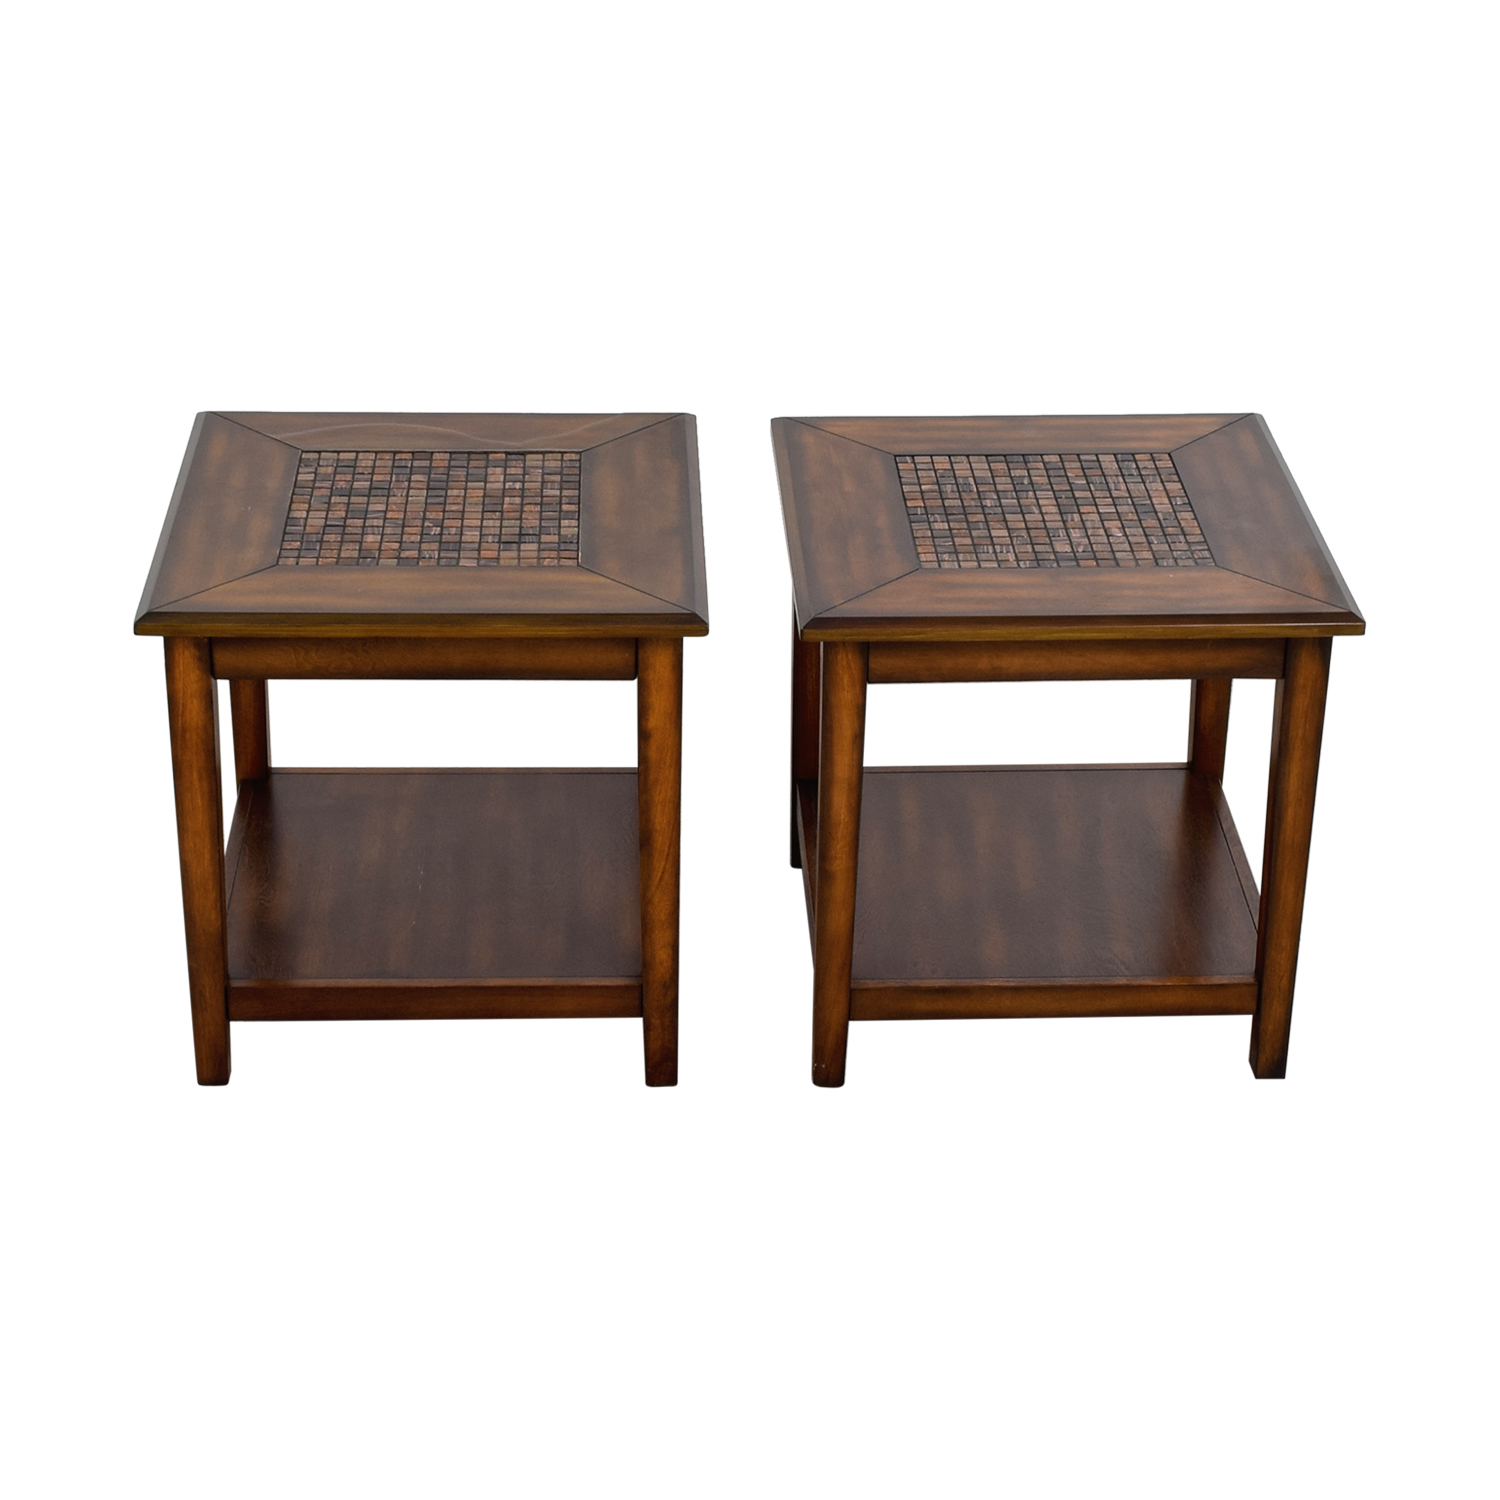 Raymour & Flanigan Raymour & Flanigan Mosaic Wood End Tables for sale